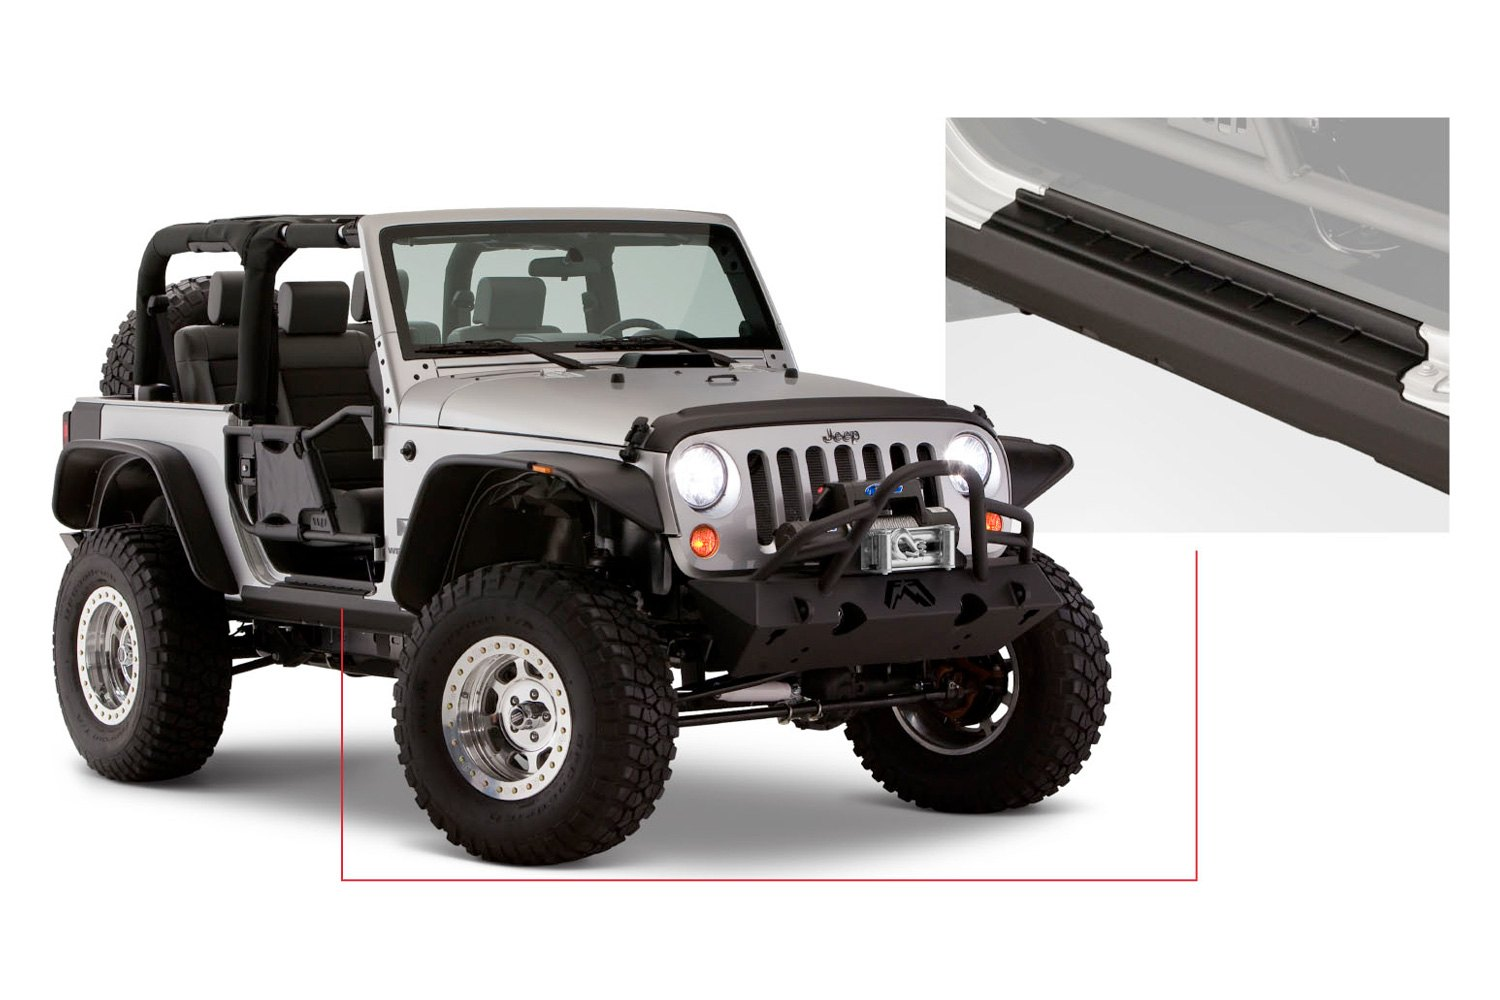 Bushwacker Trail Armor Rocker Panel & Sill Plate Cover - Bushwacker 14073